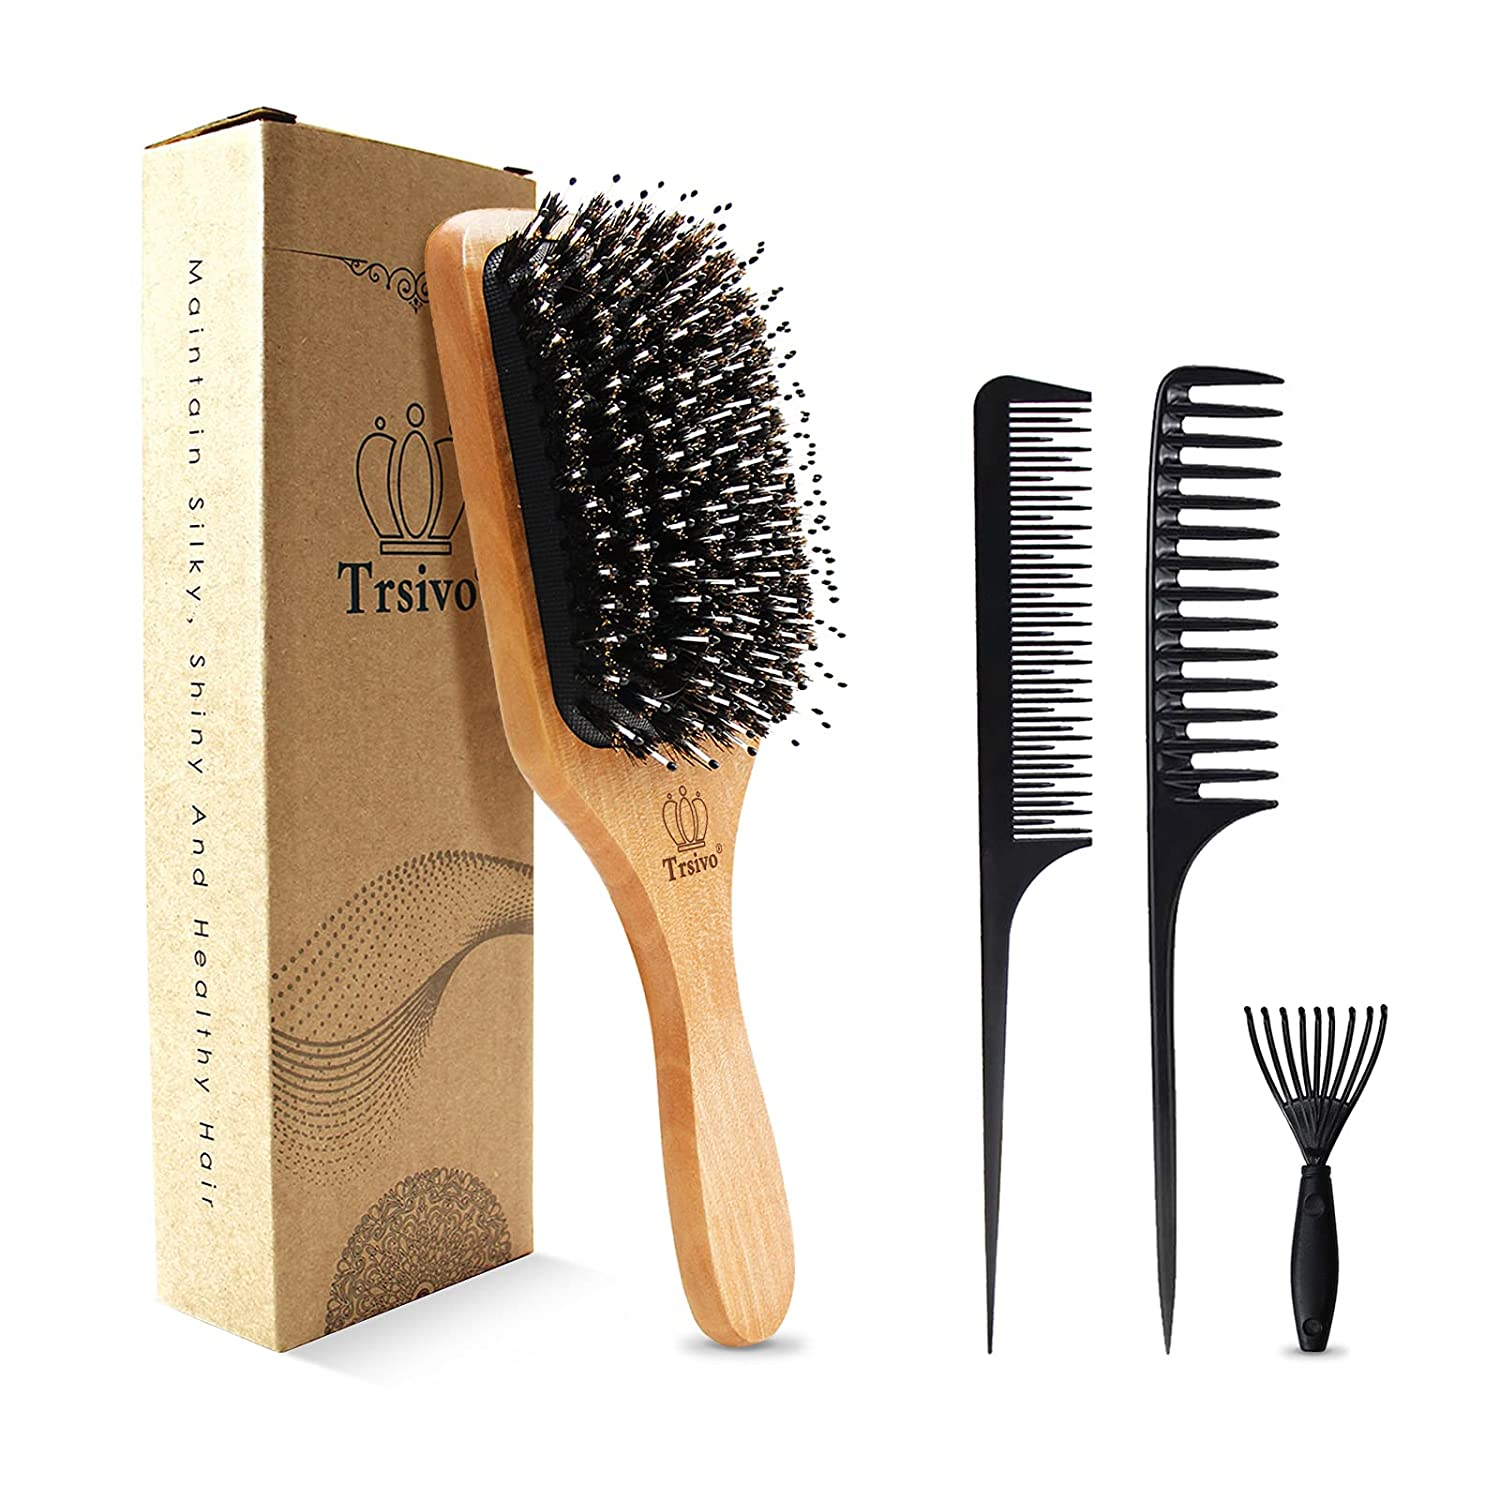 gift Trsivo Hair Brush for favorite Men with Comb Paddle Easy Set Clean Br is